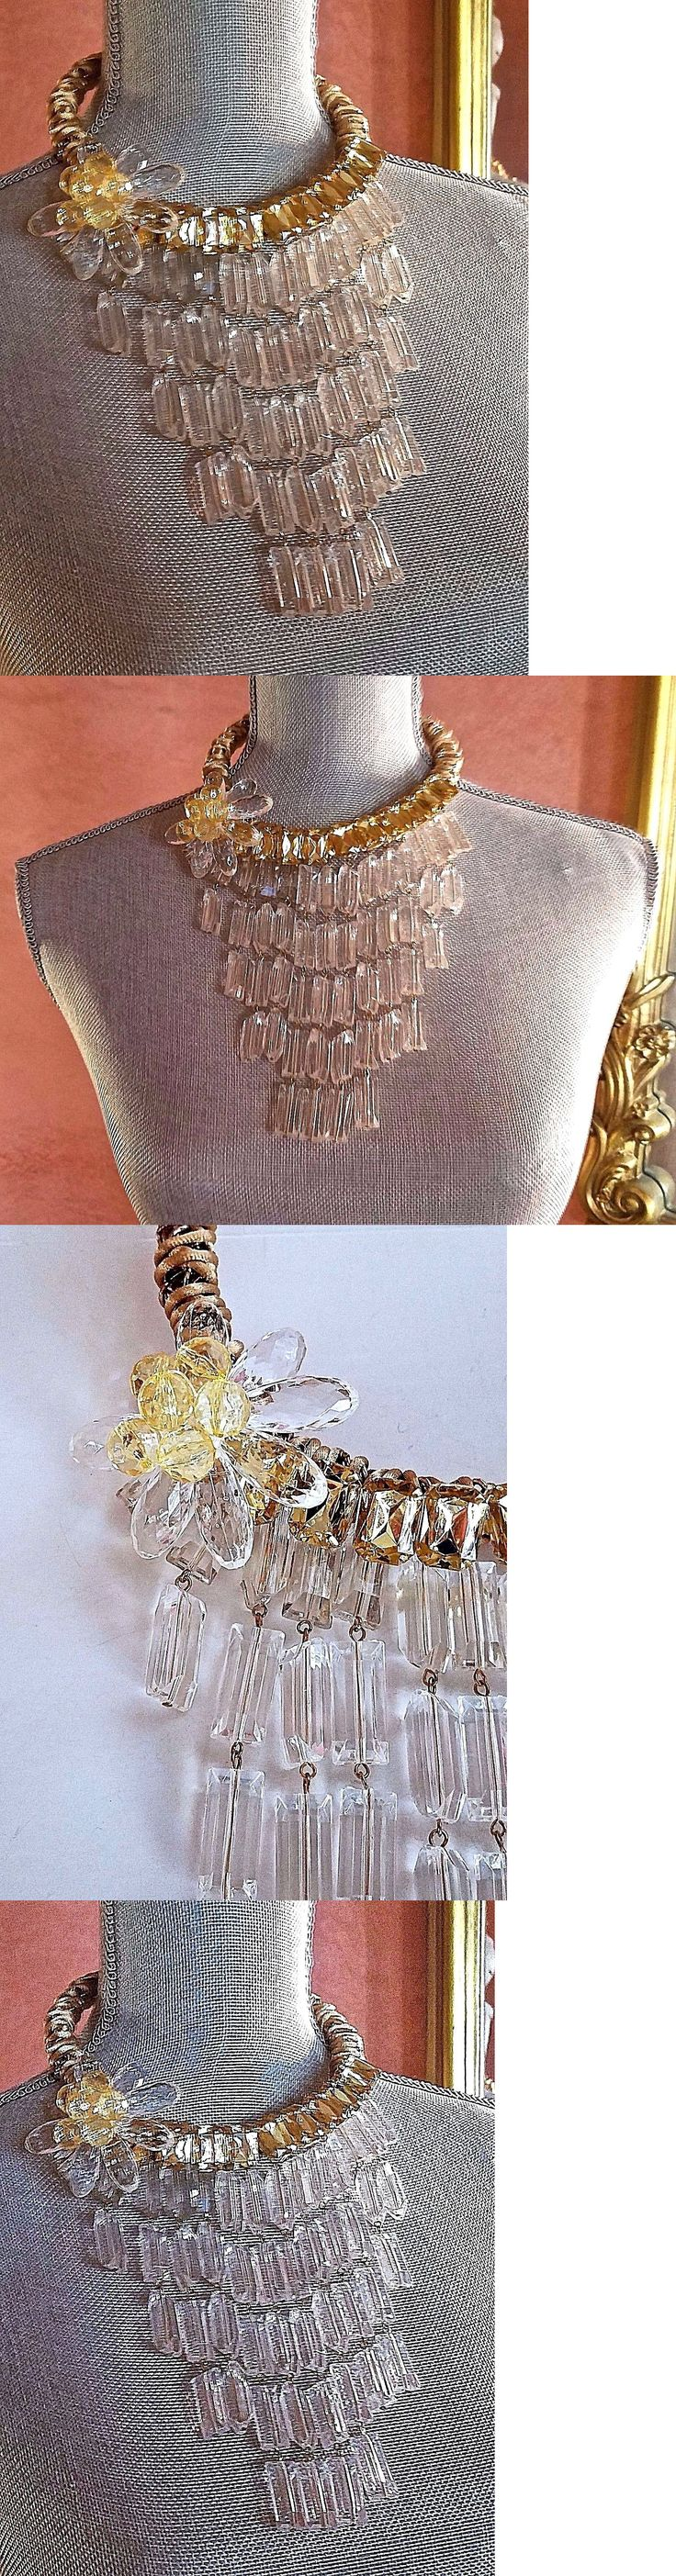 Necklaces and Pendants 155101: ~ Wow! Massive Statement Runway Designer Lucite Gold Rope Bib Pendant Necklace -> BUY IT NOW ONLY: $119.95 on eBay!